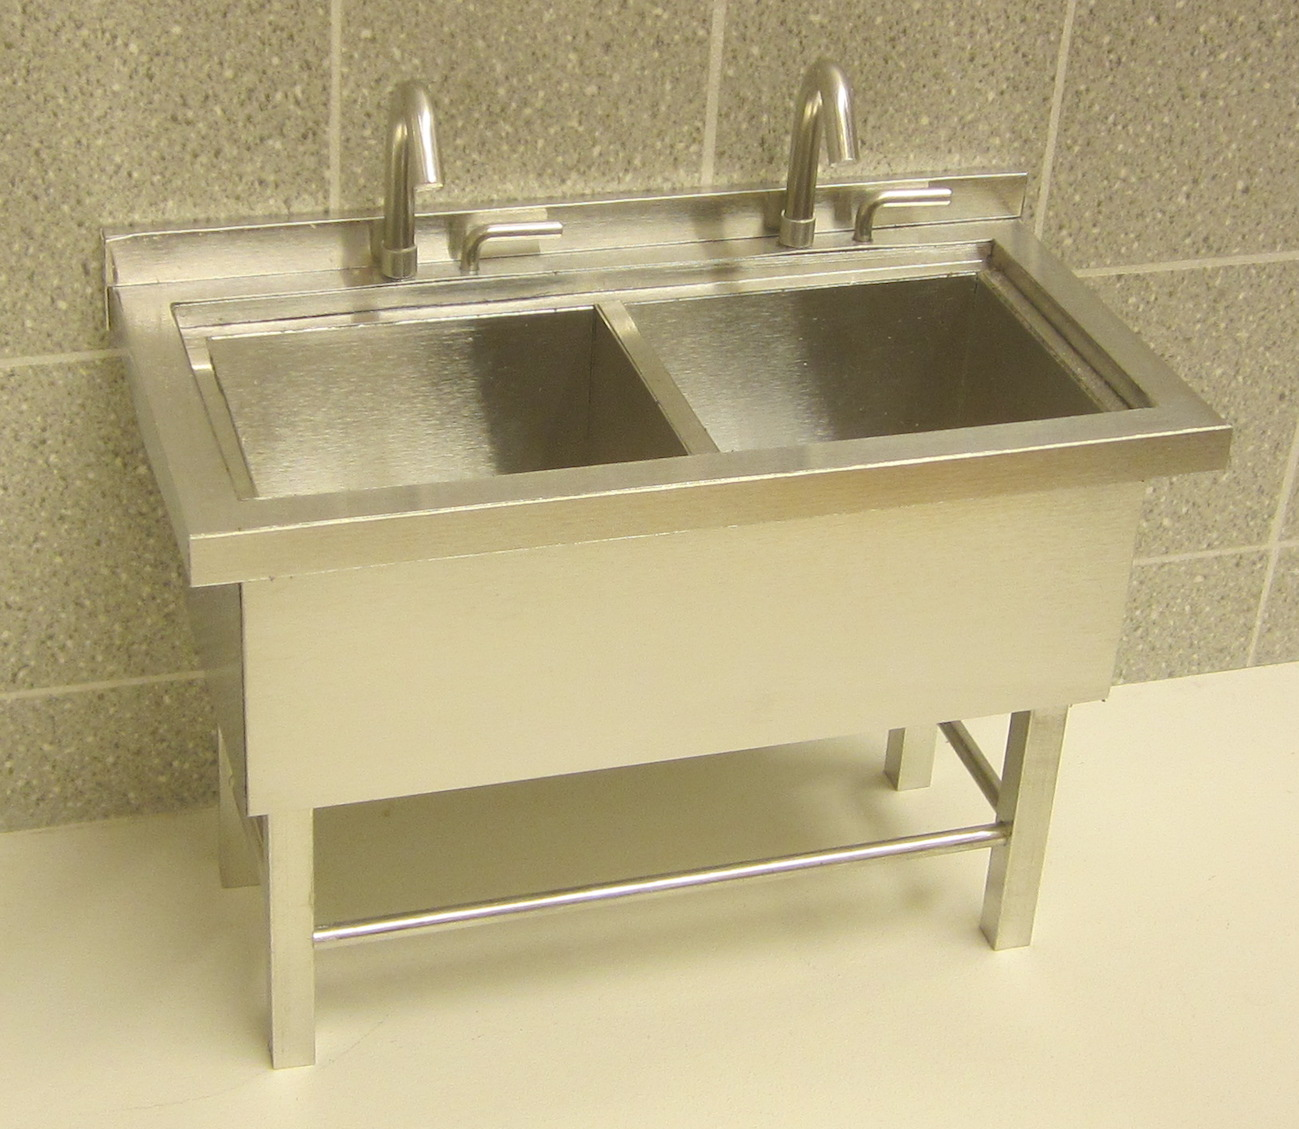 1:10 COMMERCIAL SINK